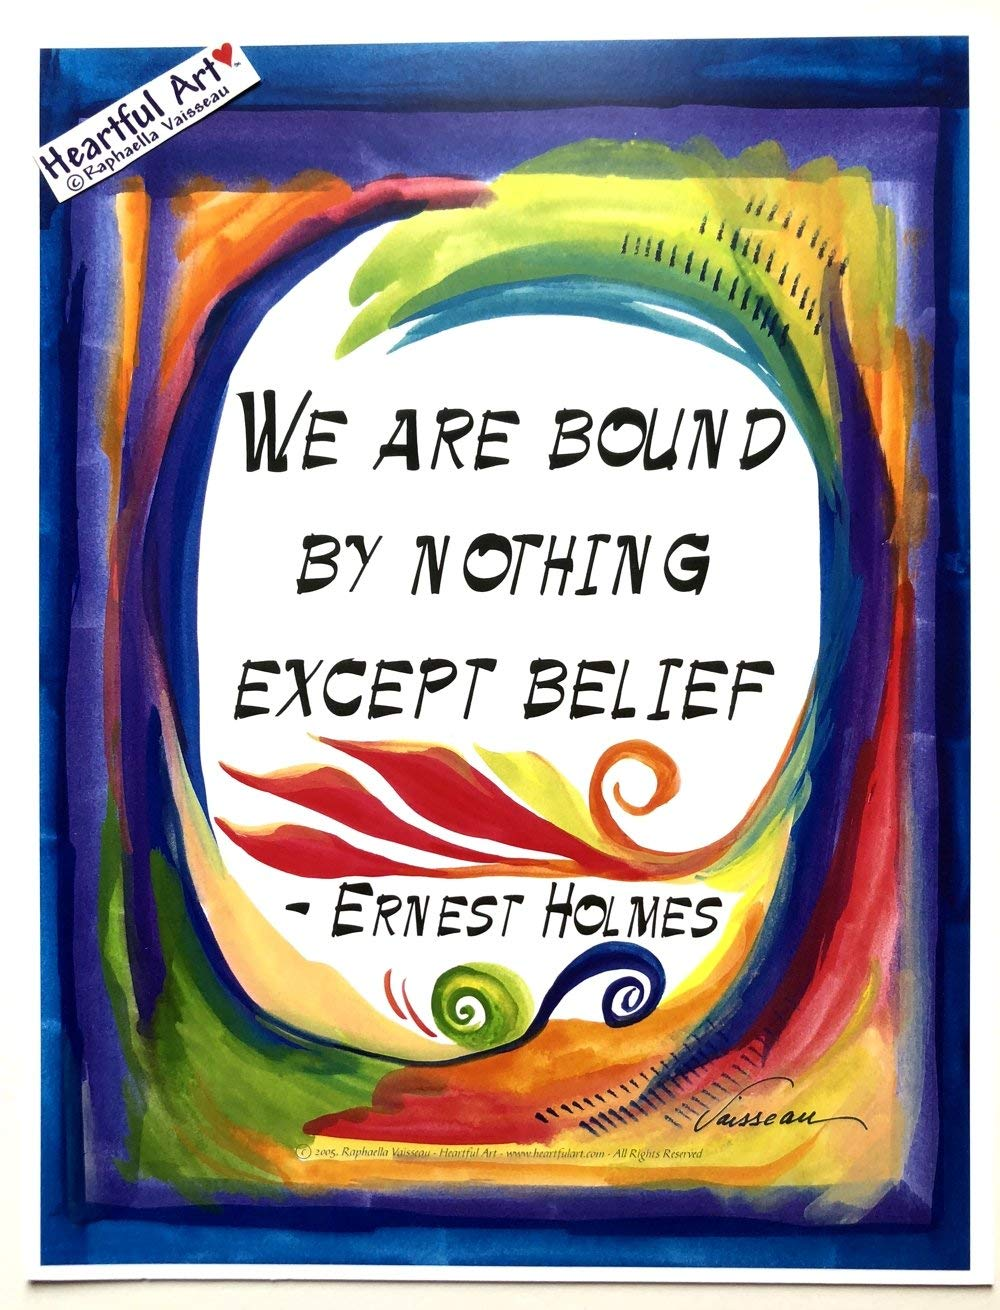 We are bound by nothing 8x11 Ernest Holmes poster - Heartful Art by Raphaella Vaisseau